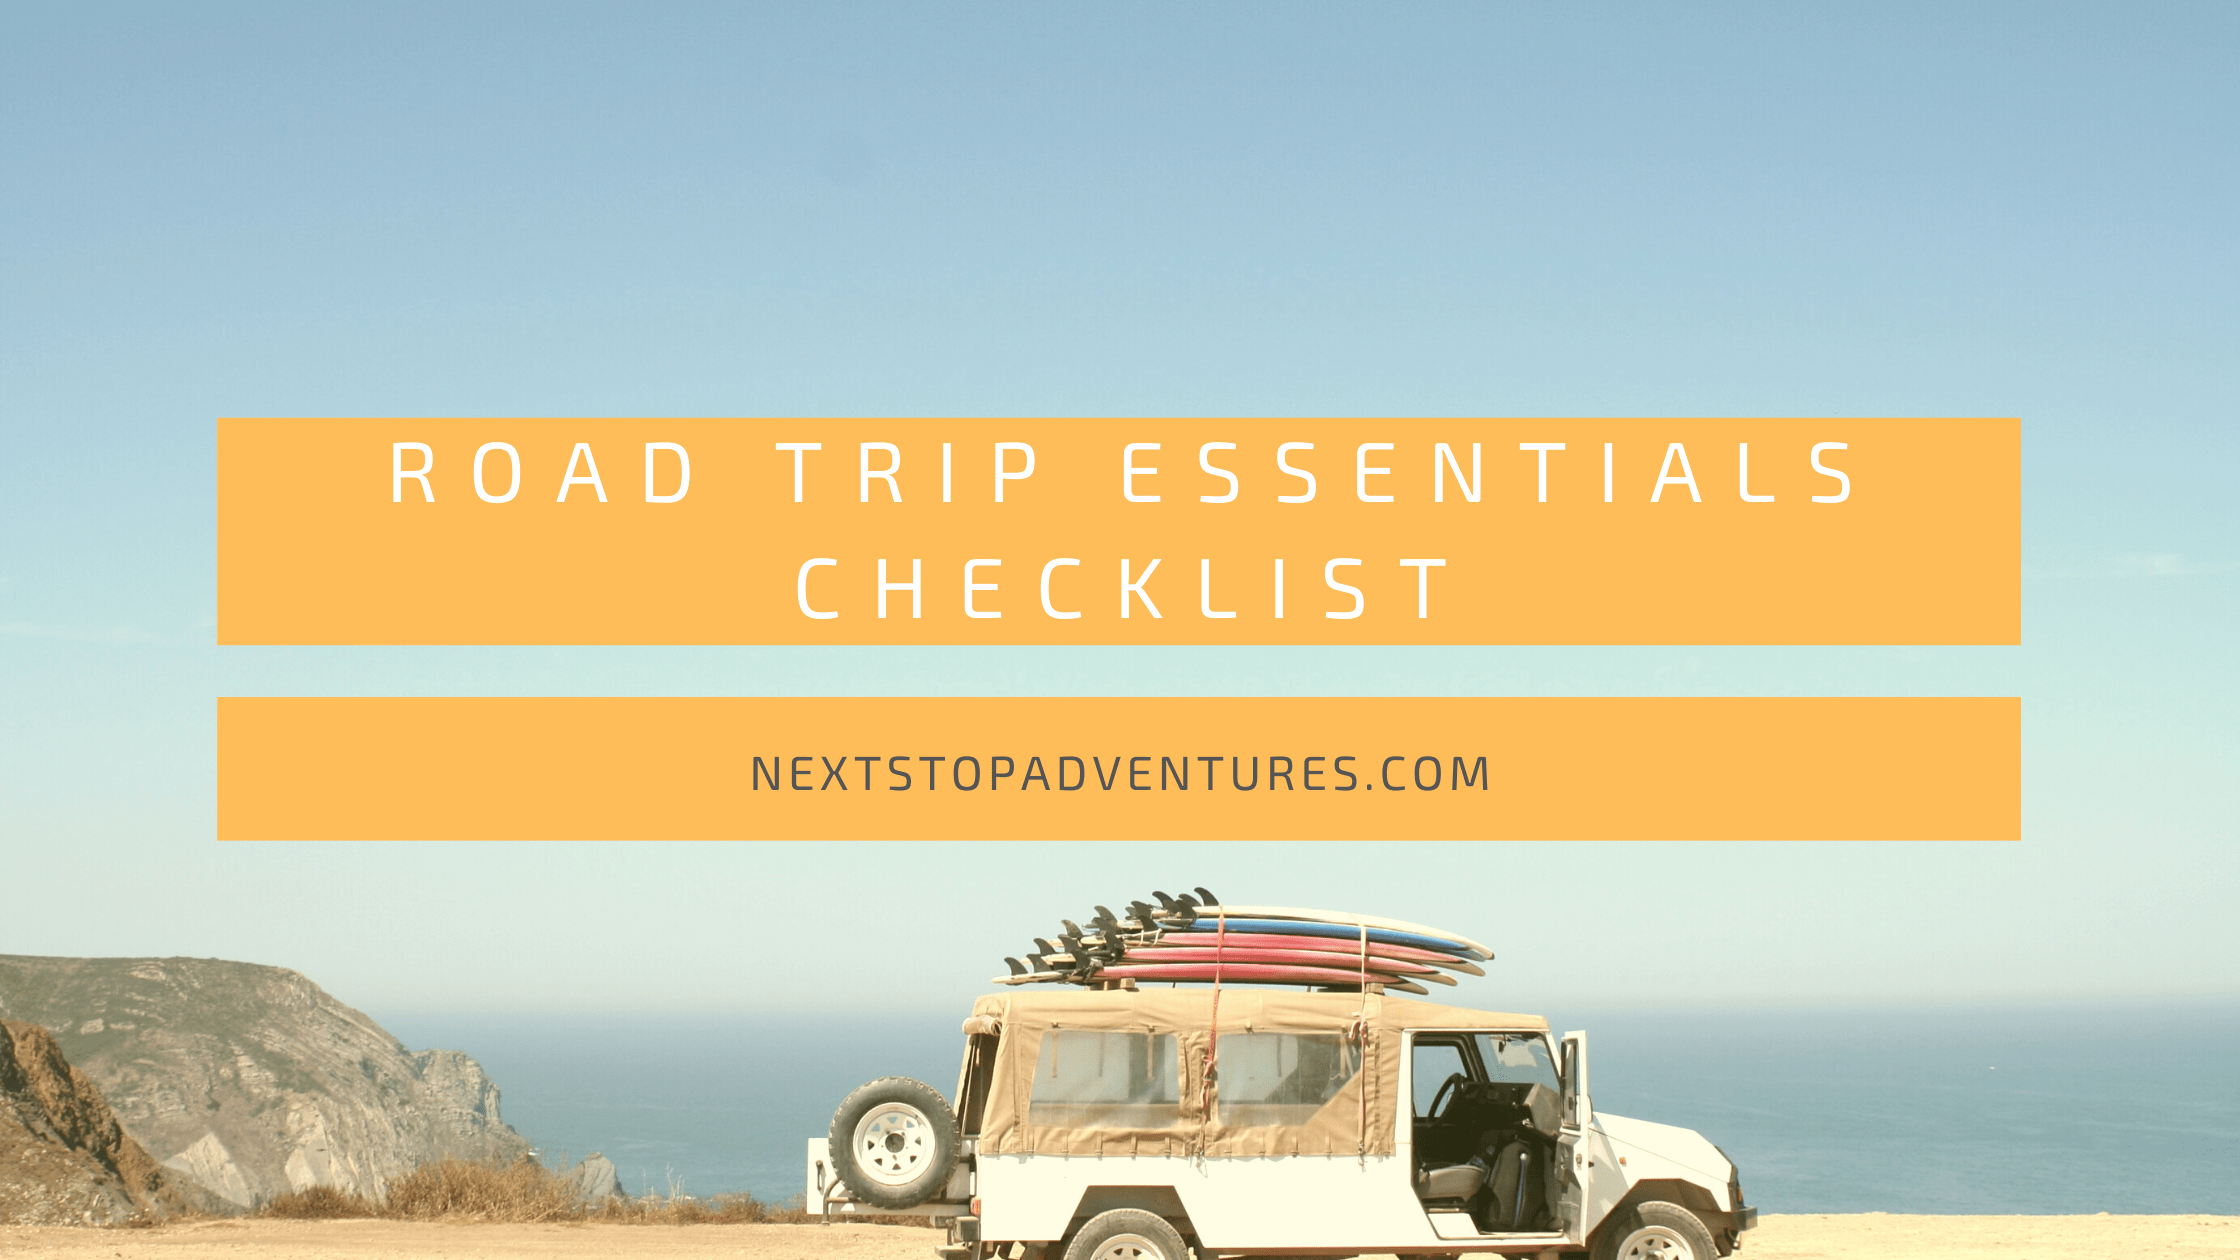 Road Trip Essentials Checklist